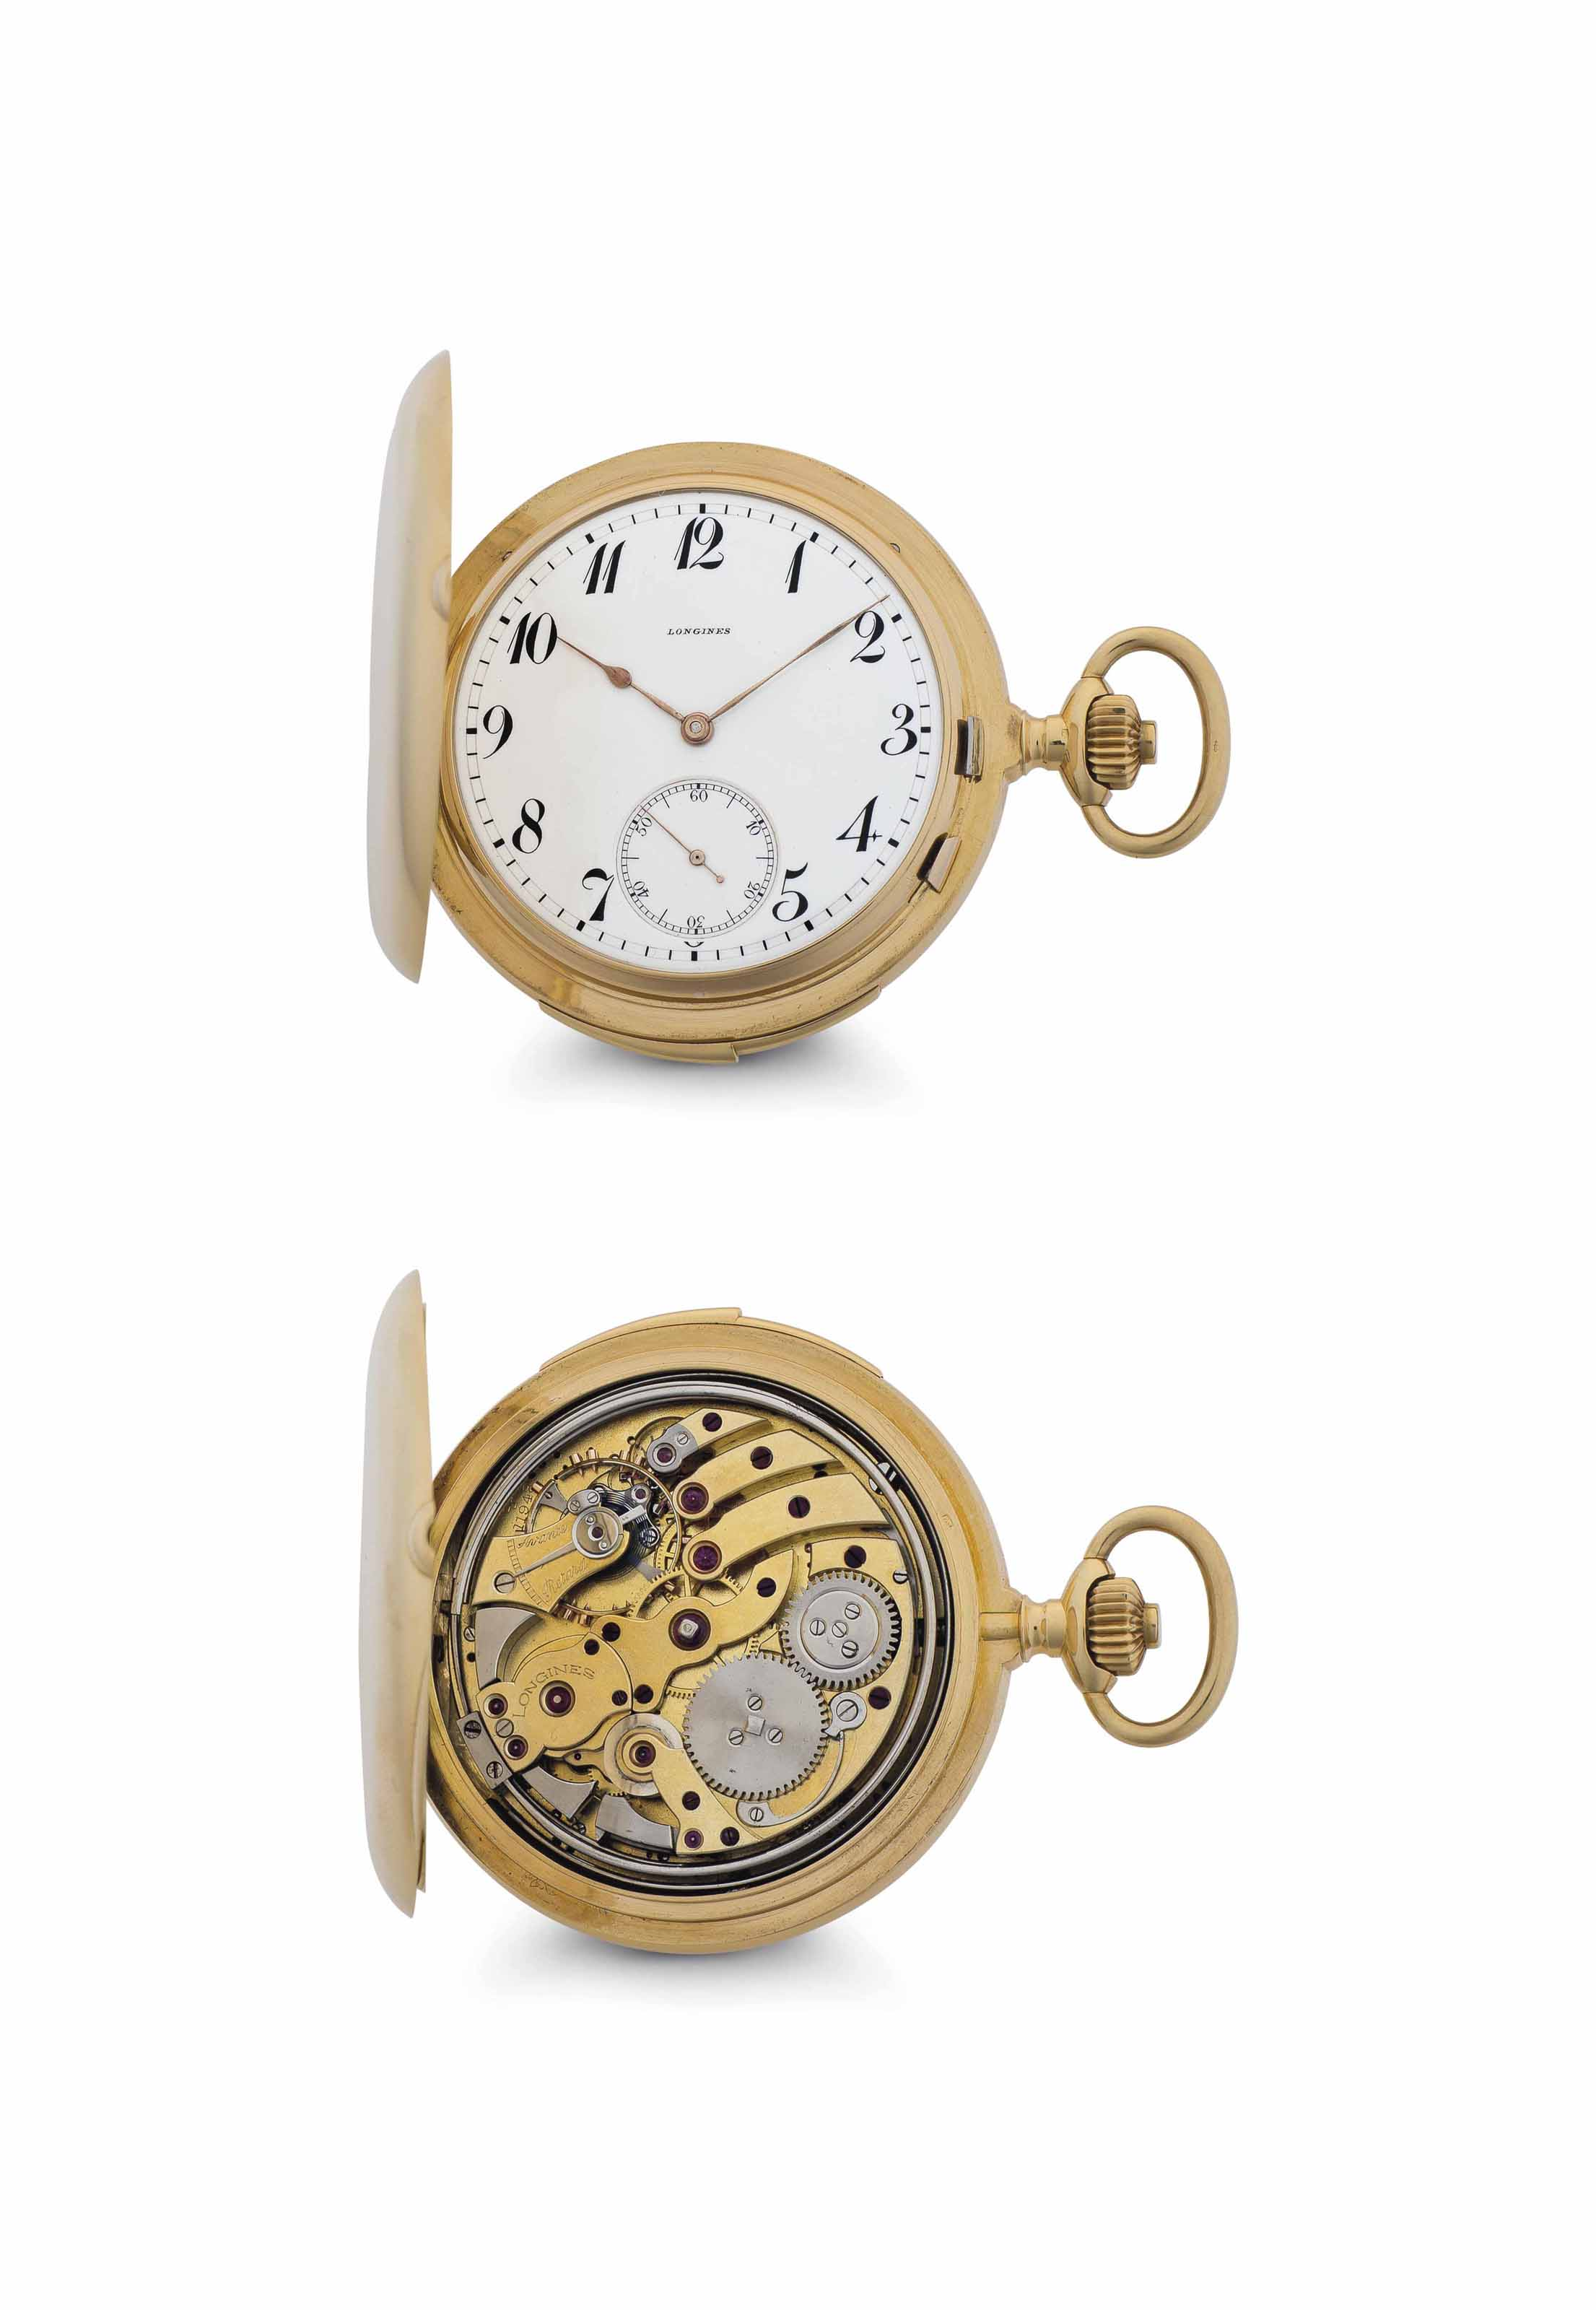 Longines. A Fine and Rare 18k Gold Hunter Case Minute Repeating Keyless Lever Watch with Westminster Carillon Chime